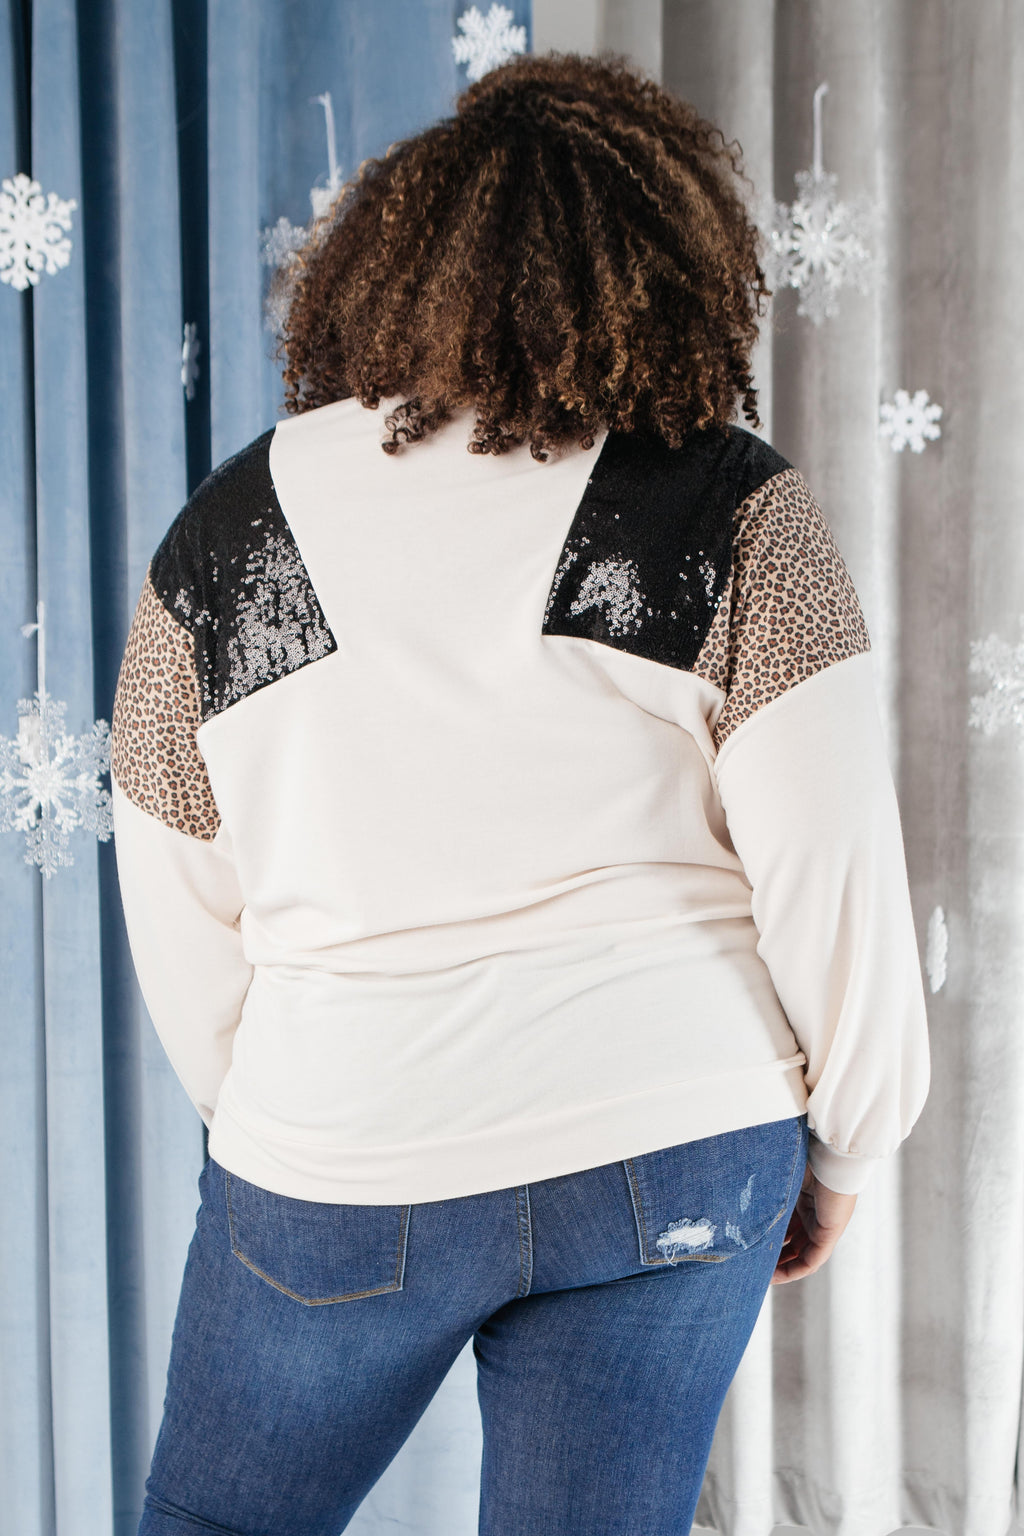 The Spotty Holiday Top-11-30-2020, 1XL, 2XL, 3XL, CMDB2020, Group A, Group B, Group C, Large, Medium, Small, Tops, XL, XS-Womens Artisan USA American Made Clothing Accessories